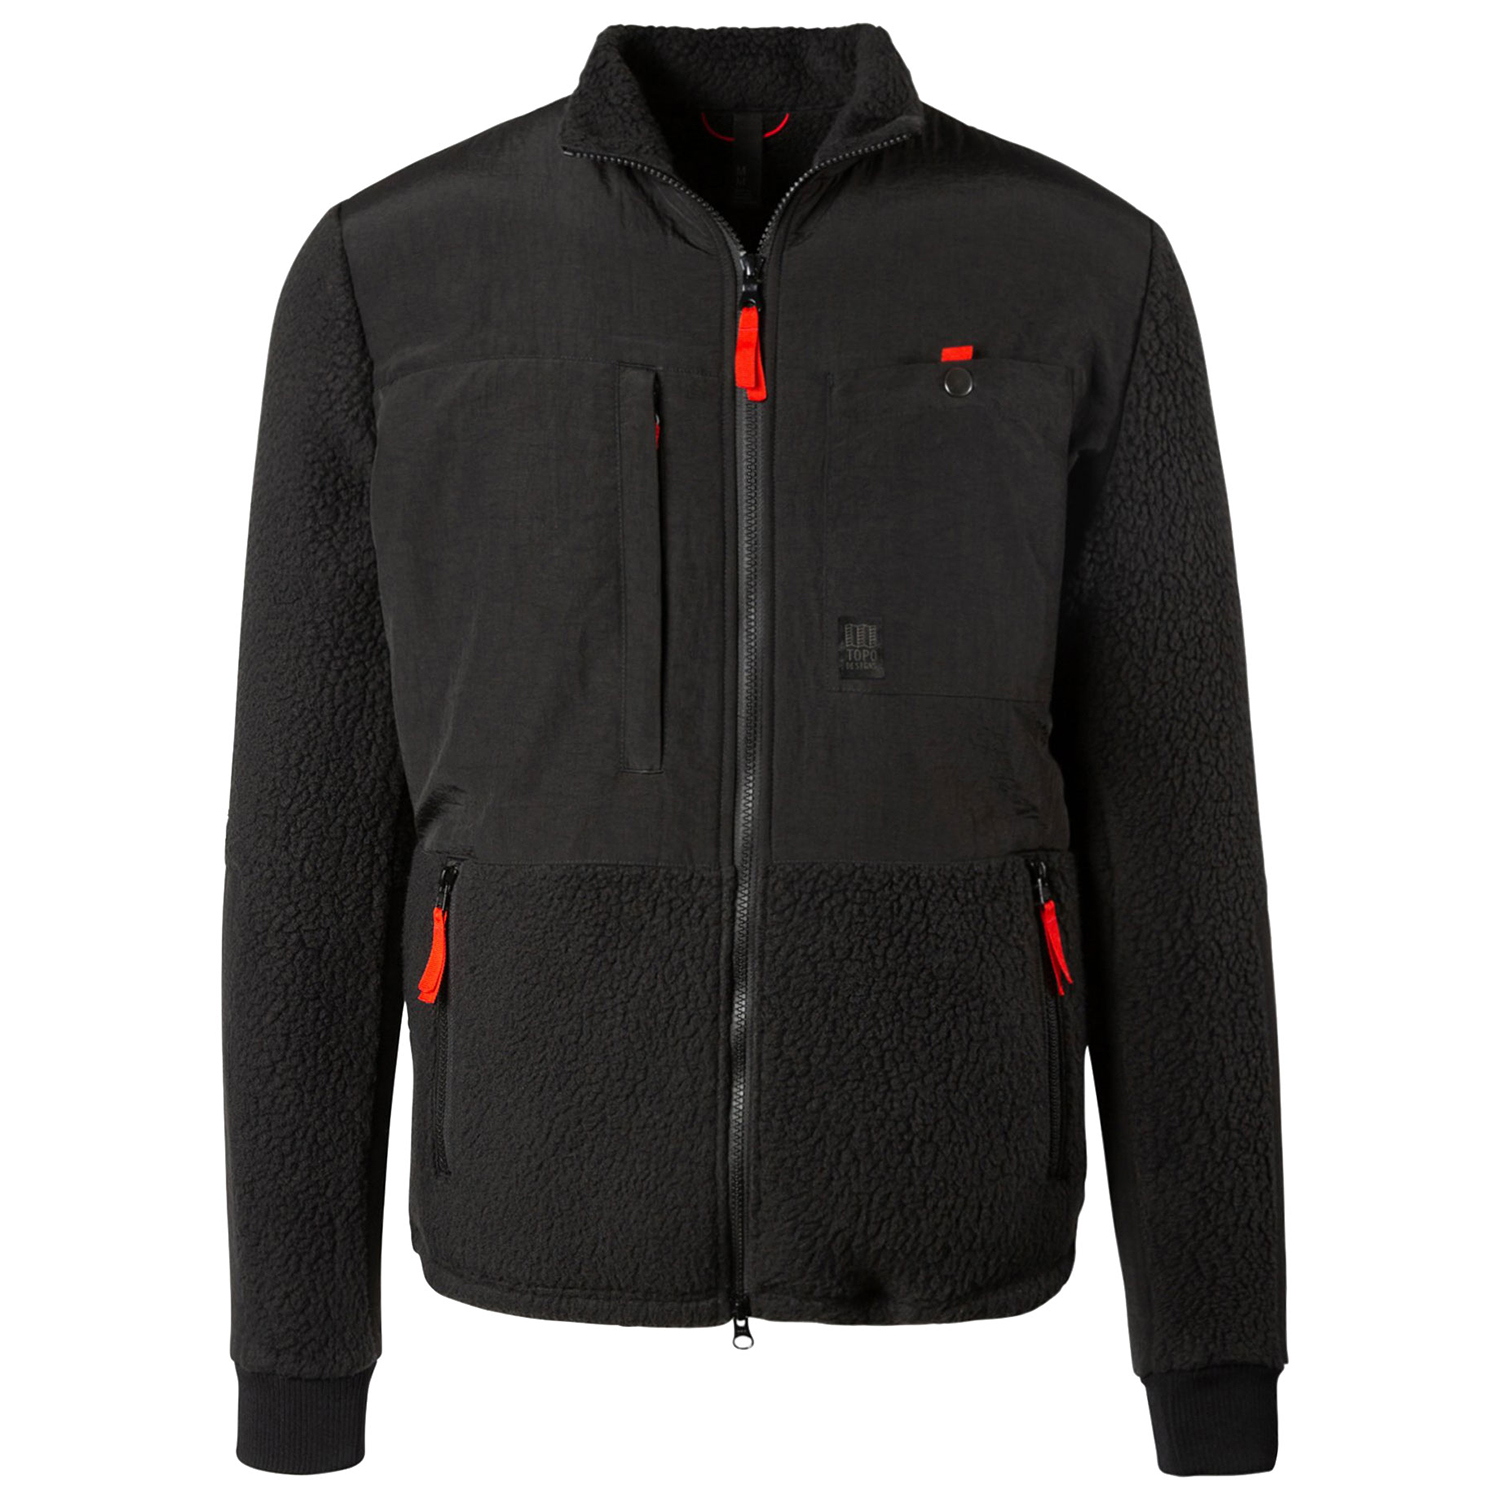 Womens Jackets & Gilets available from Blackleaf